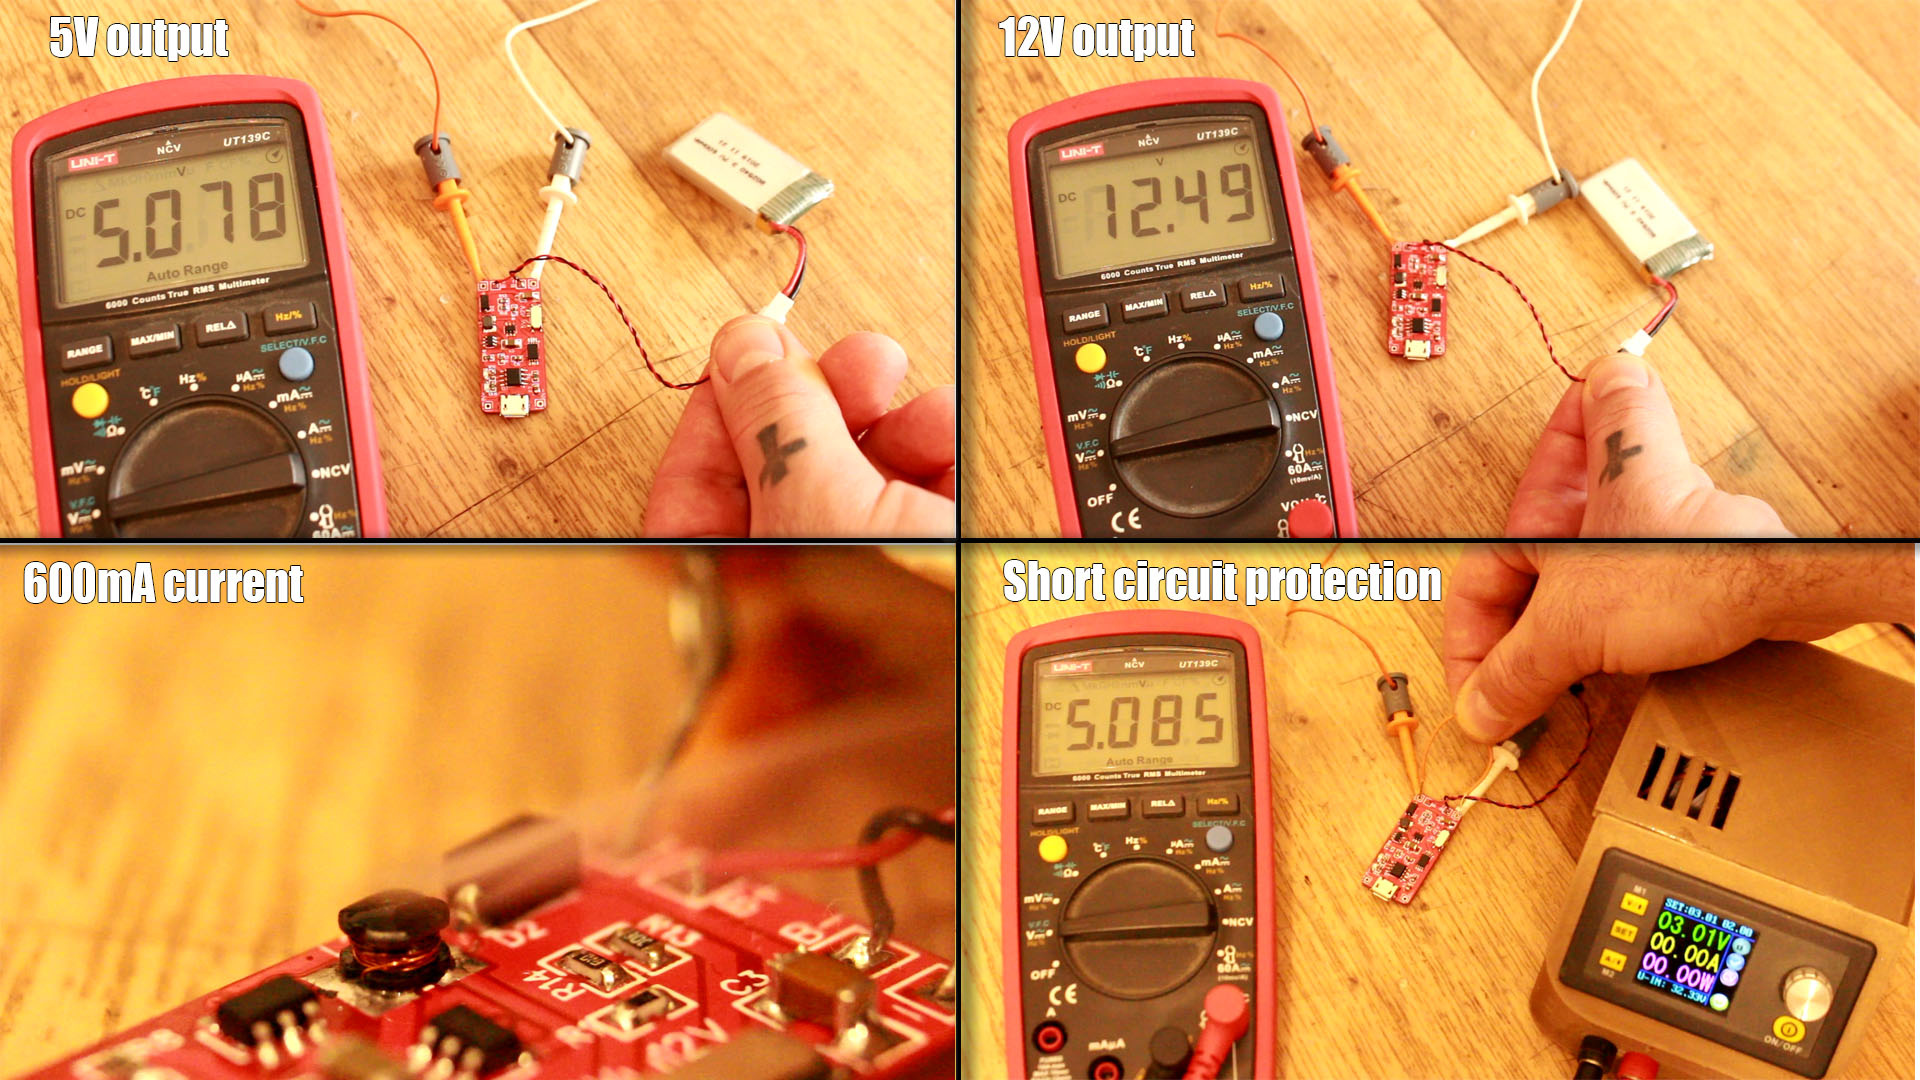 homemade BMS 3.7V battery with boost converter